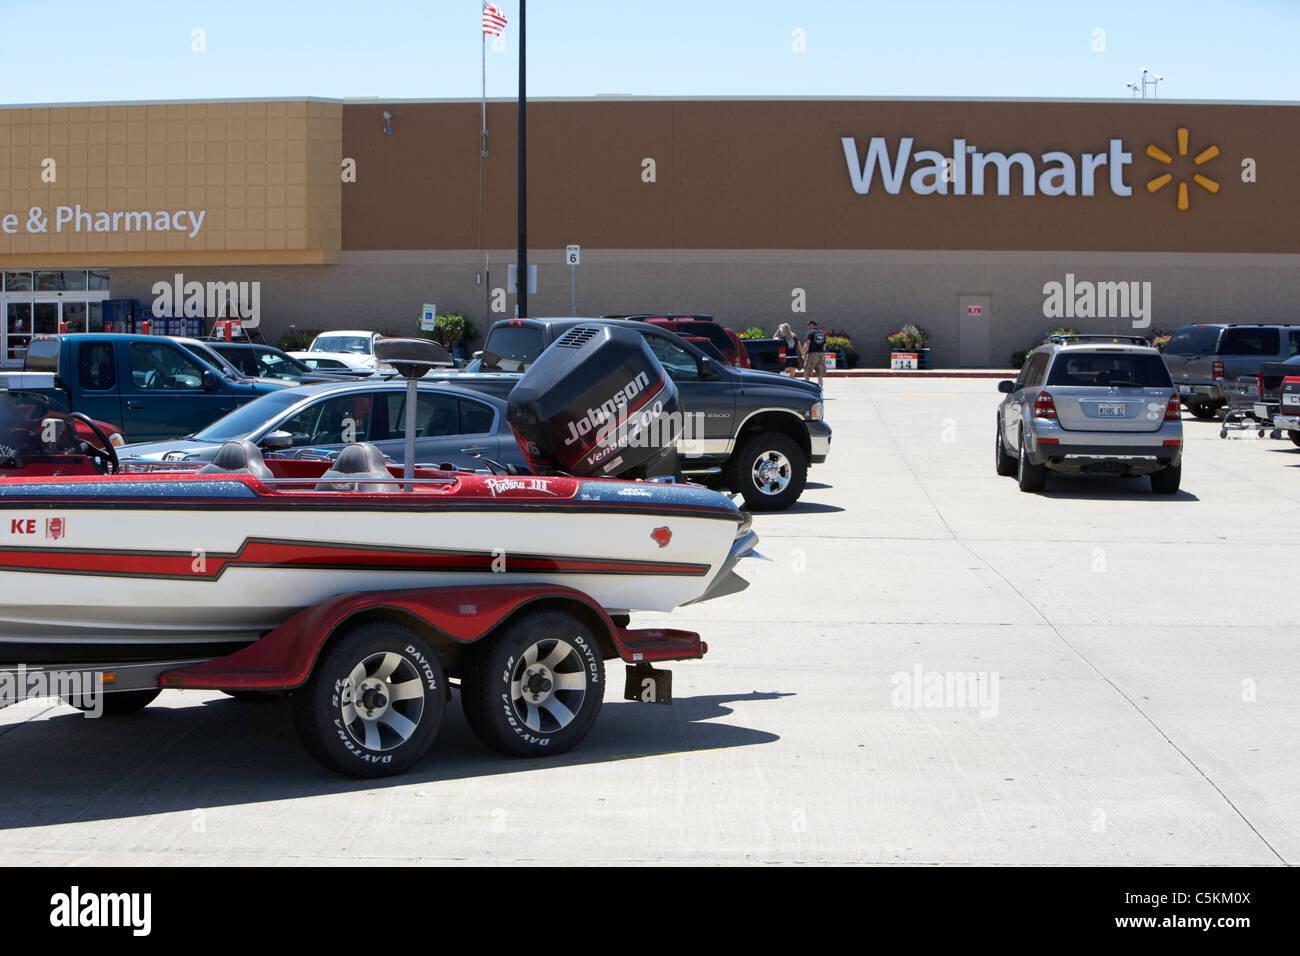 boat and cars parked in the parking lot of a large walmart store in